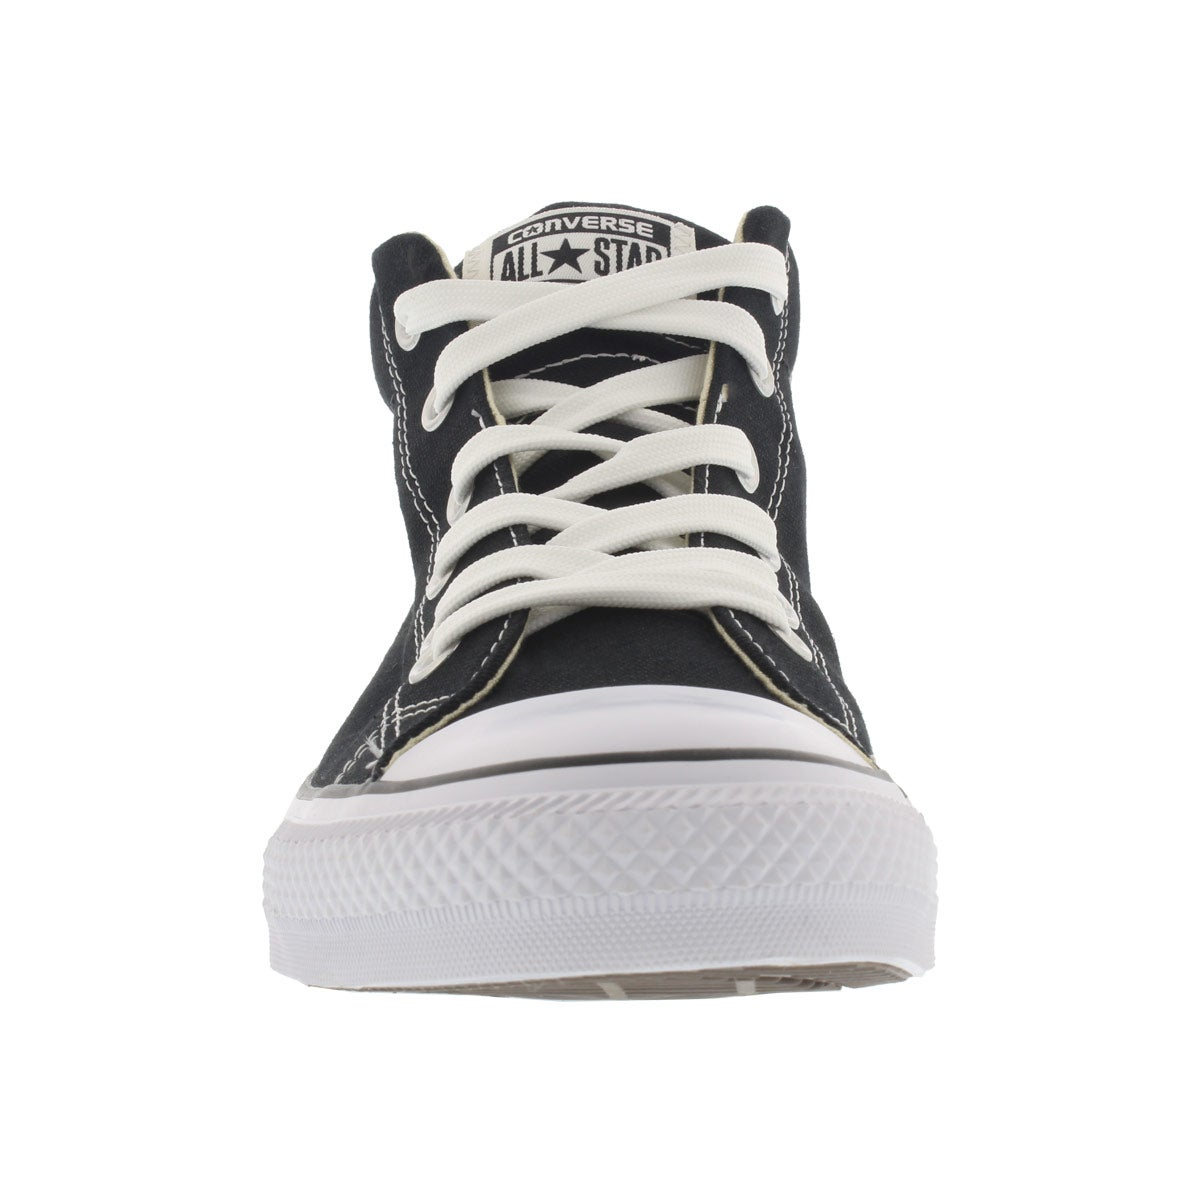 Mns CT A/S Street Canvas blk mid sneaker